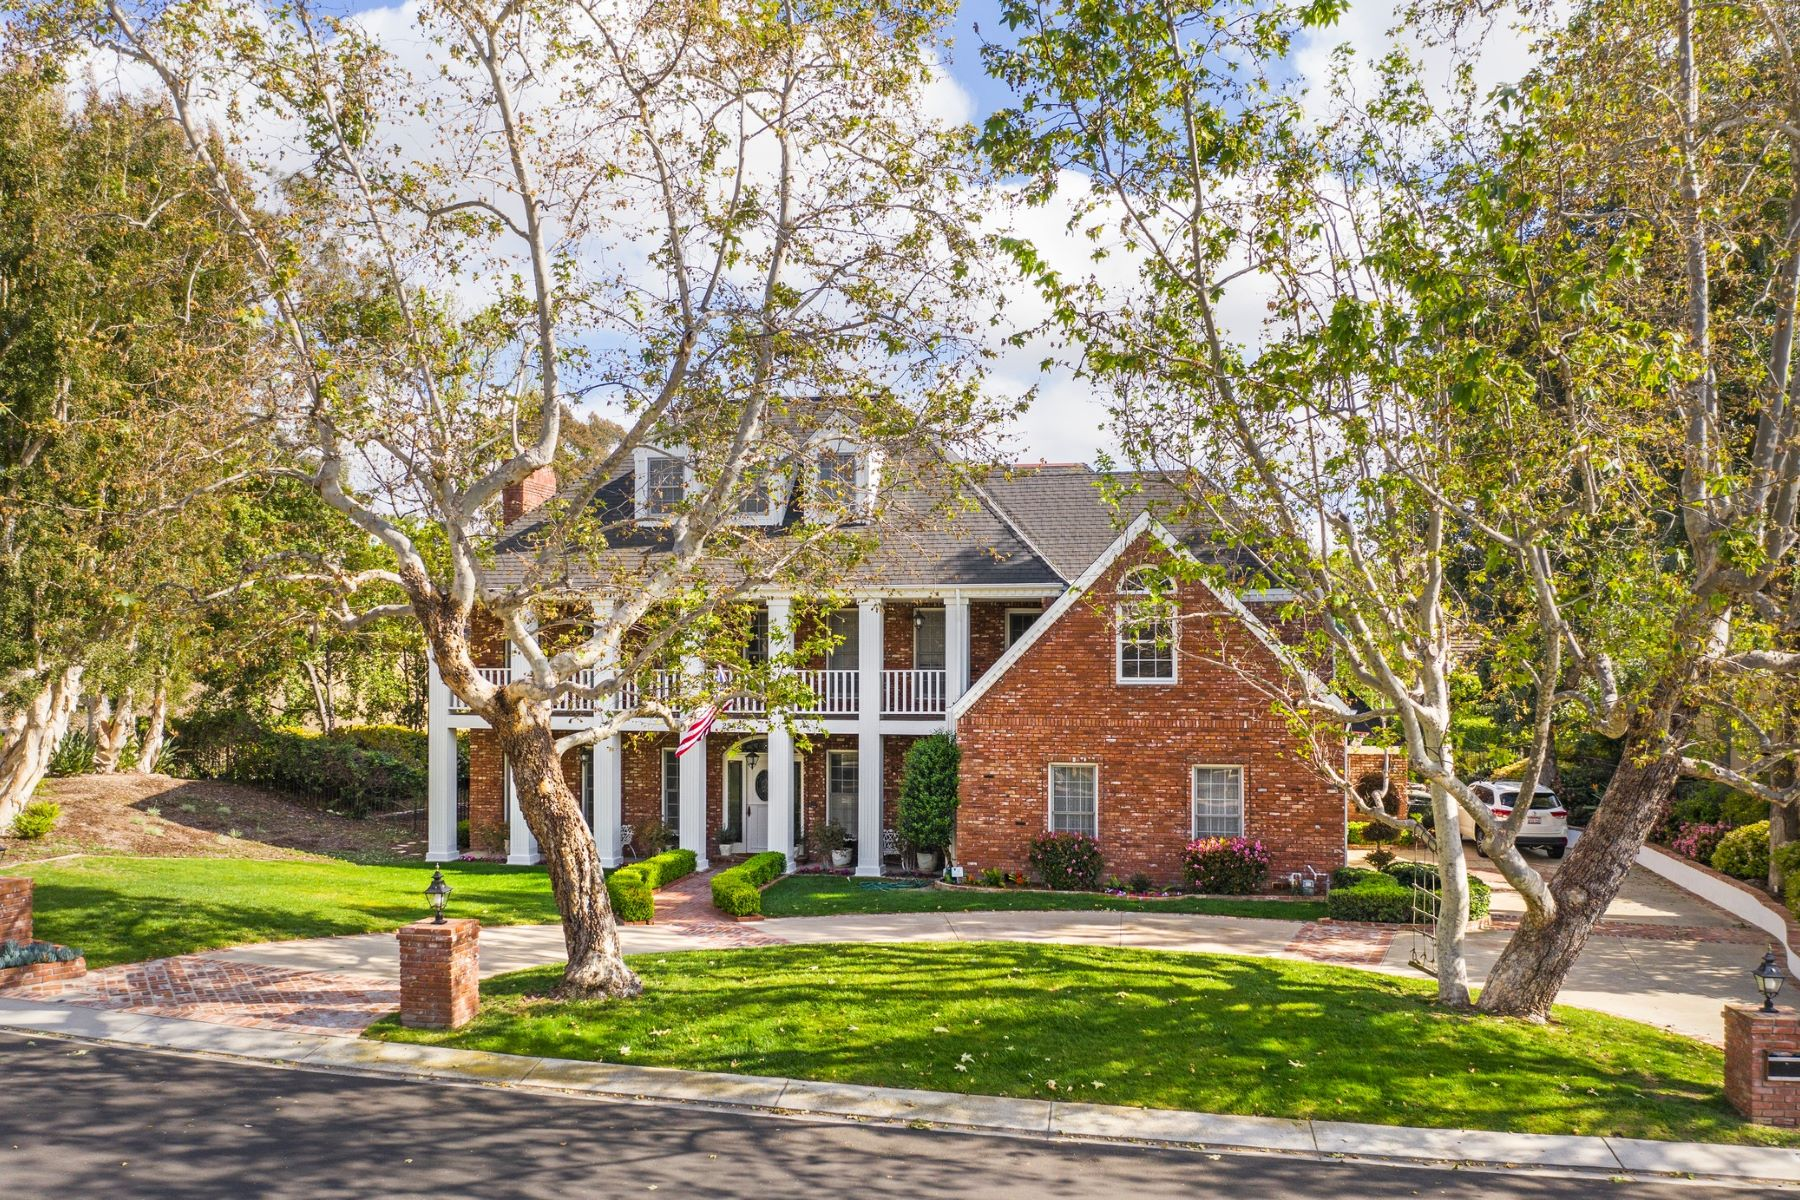 Single Family Homes for Sale at 25422 Spotted Pony Lane Laguna Hills, California 92653 United States